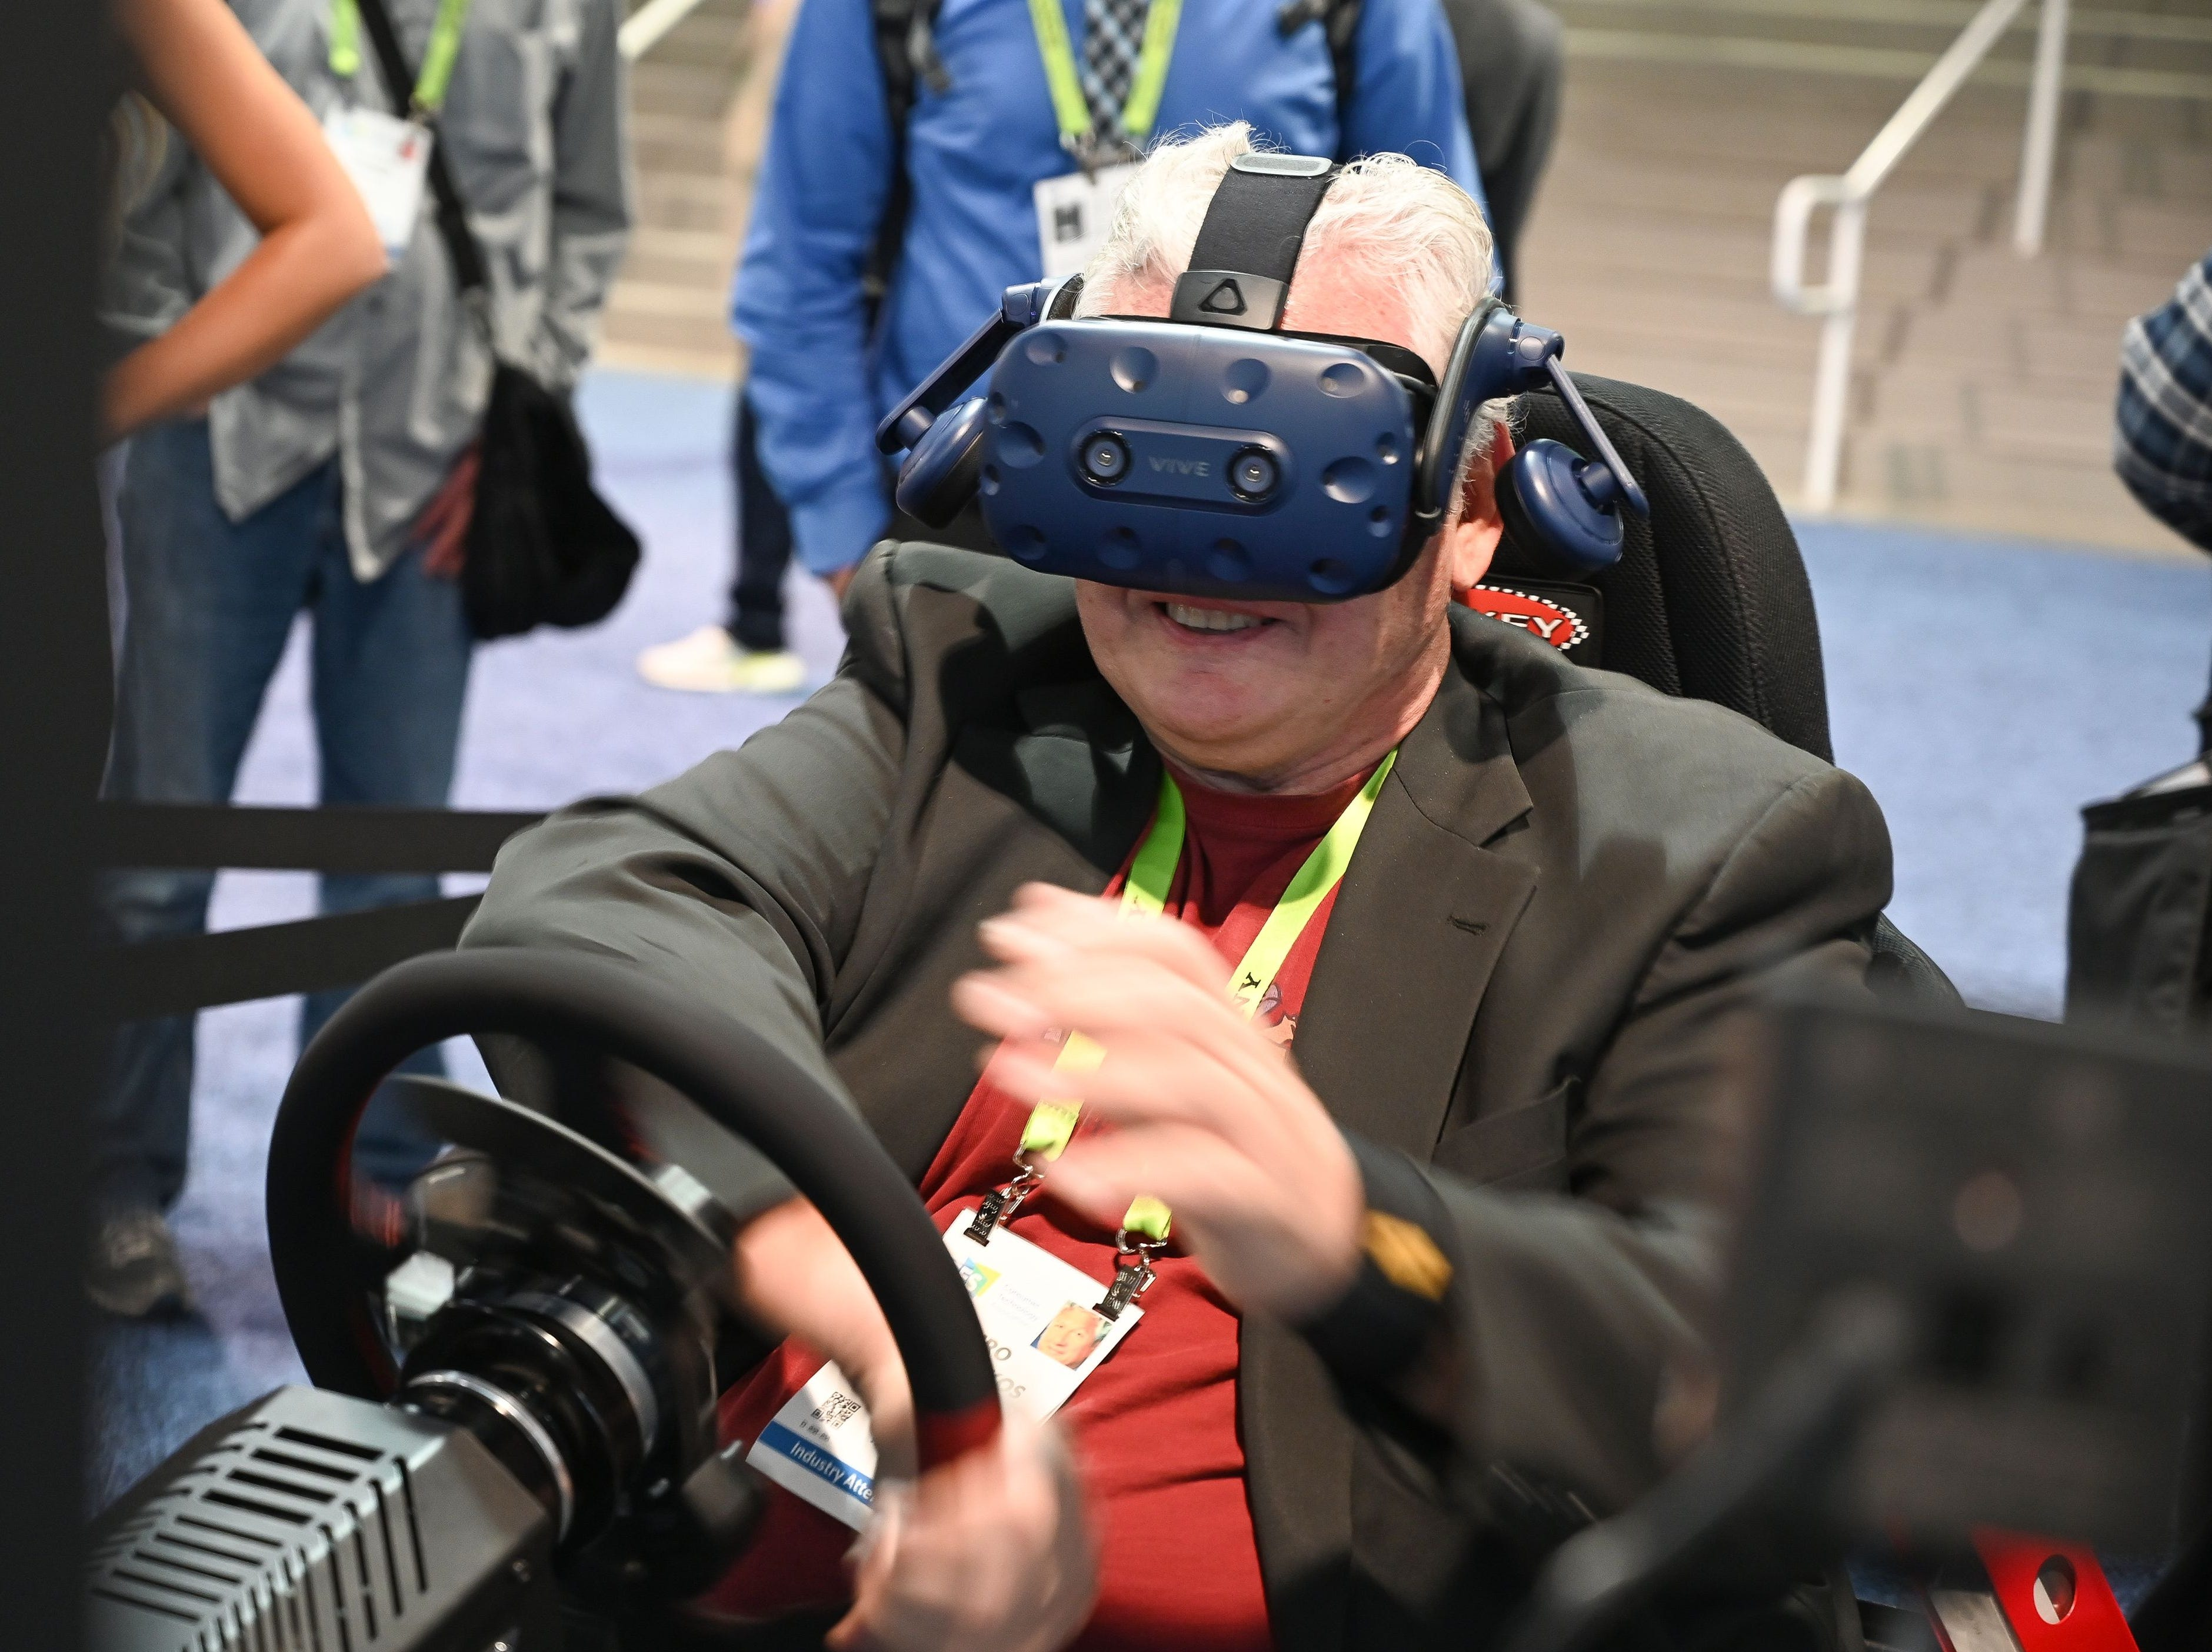 An attendee wears a HTC Vive virtual reality headset as he tries a Simxperience in-home auto racing simulator at the Earthquake booth during CES 2019 on January 8, 2019 at the Las Vegas Convention Center in Las Vegas, Nevada. (Photo by Robyn Beck / AFP)ROBYN BECK/AFP/Getty Images ORIG FILE ID: AFP_1C29N7